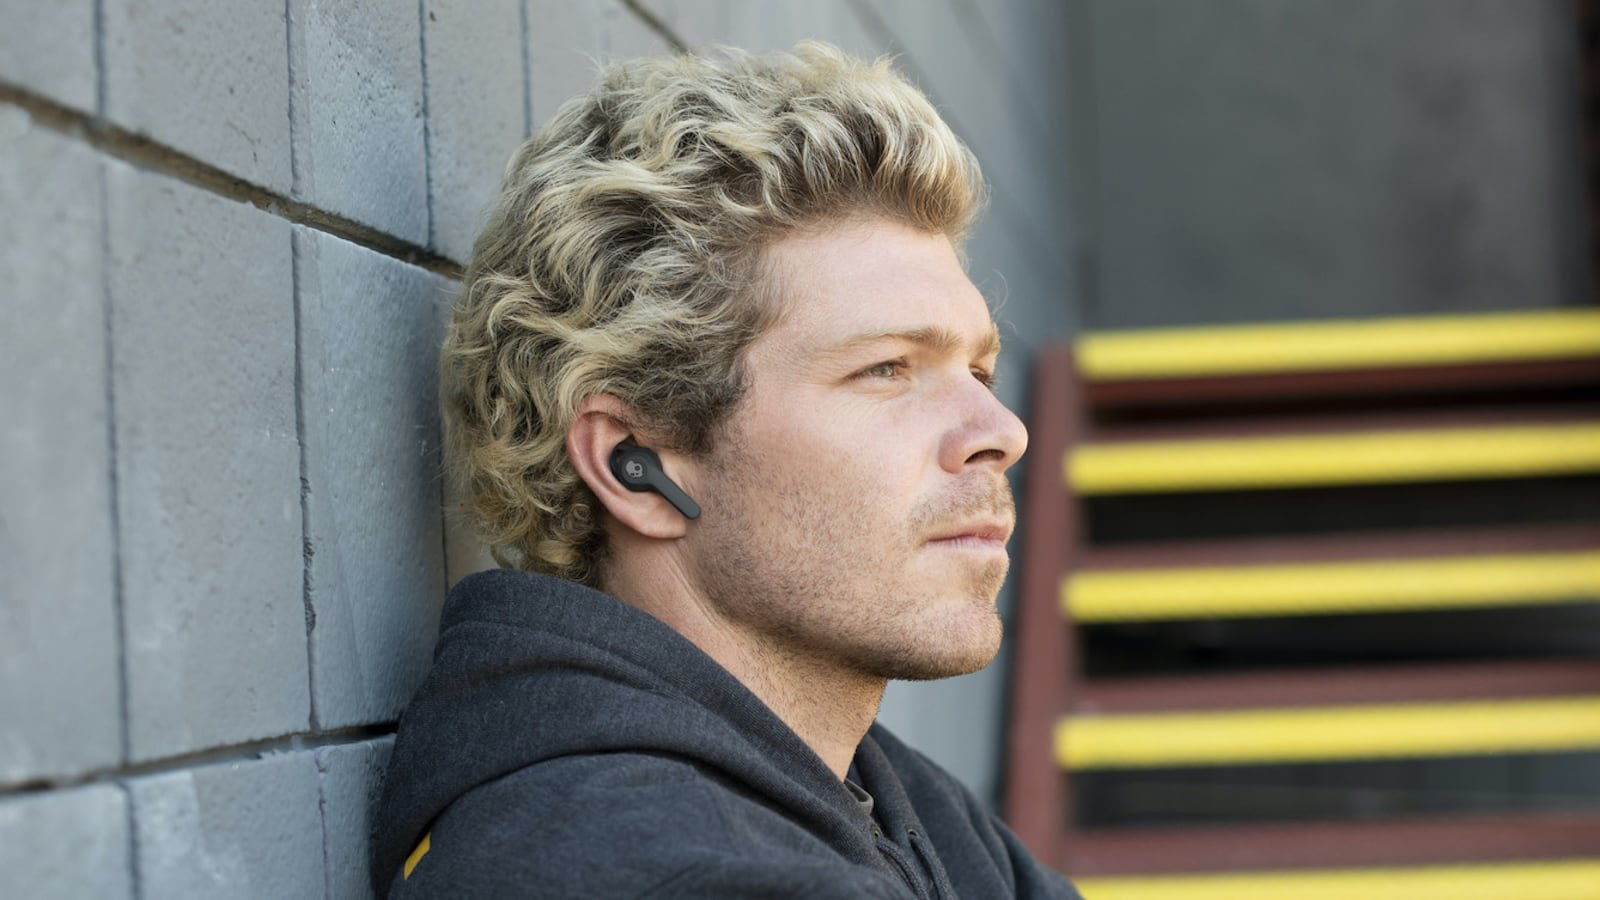 Skullcandy Indy Fuel Dust-Resistant Earbuds let you control everything directly from your buds